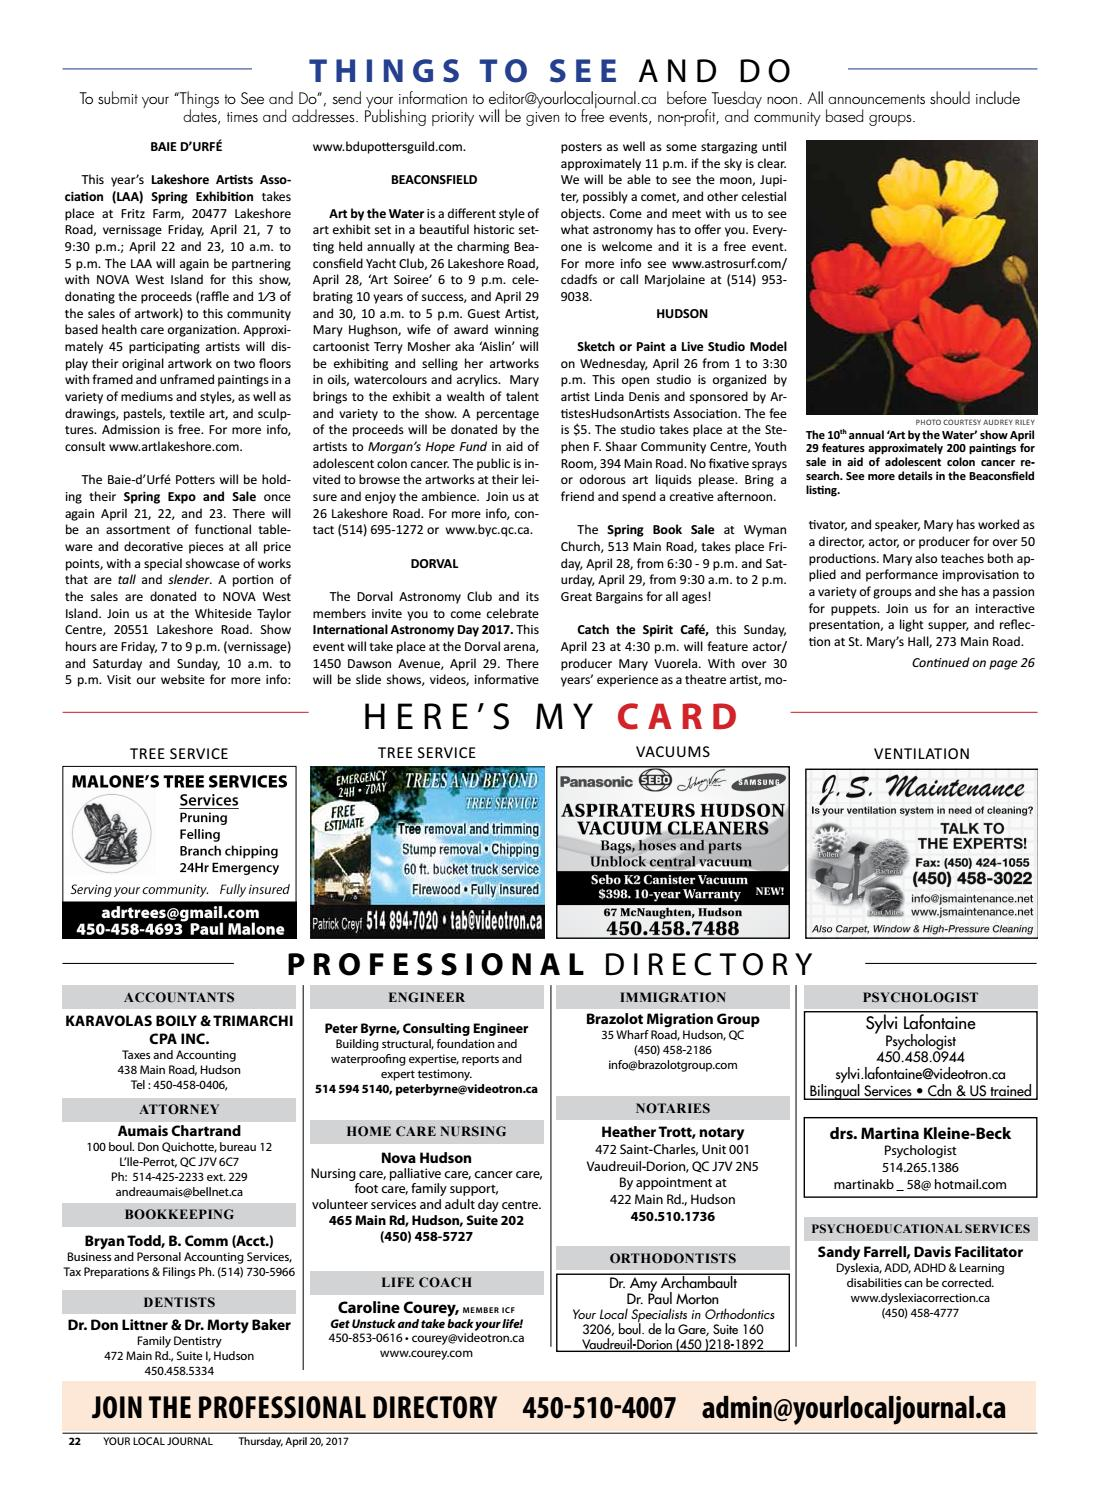 Your Local Journal - April 20th, 2017 by Your Local Journal